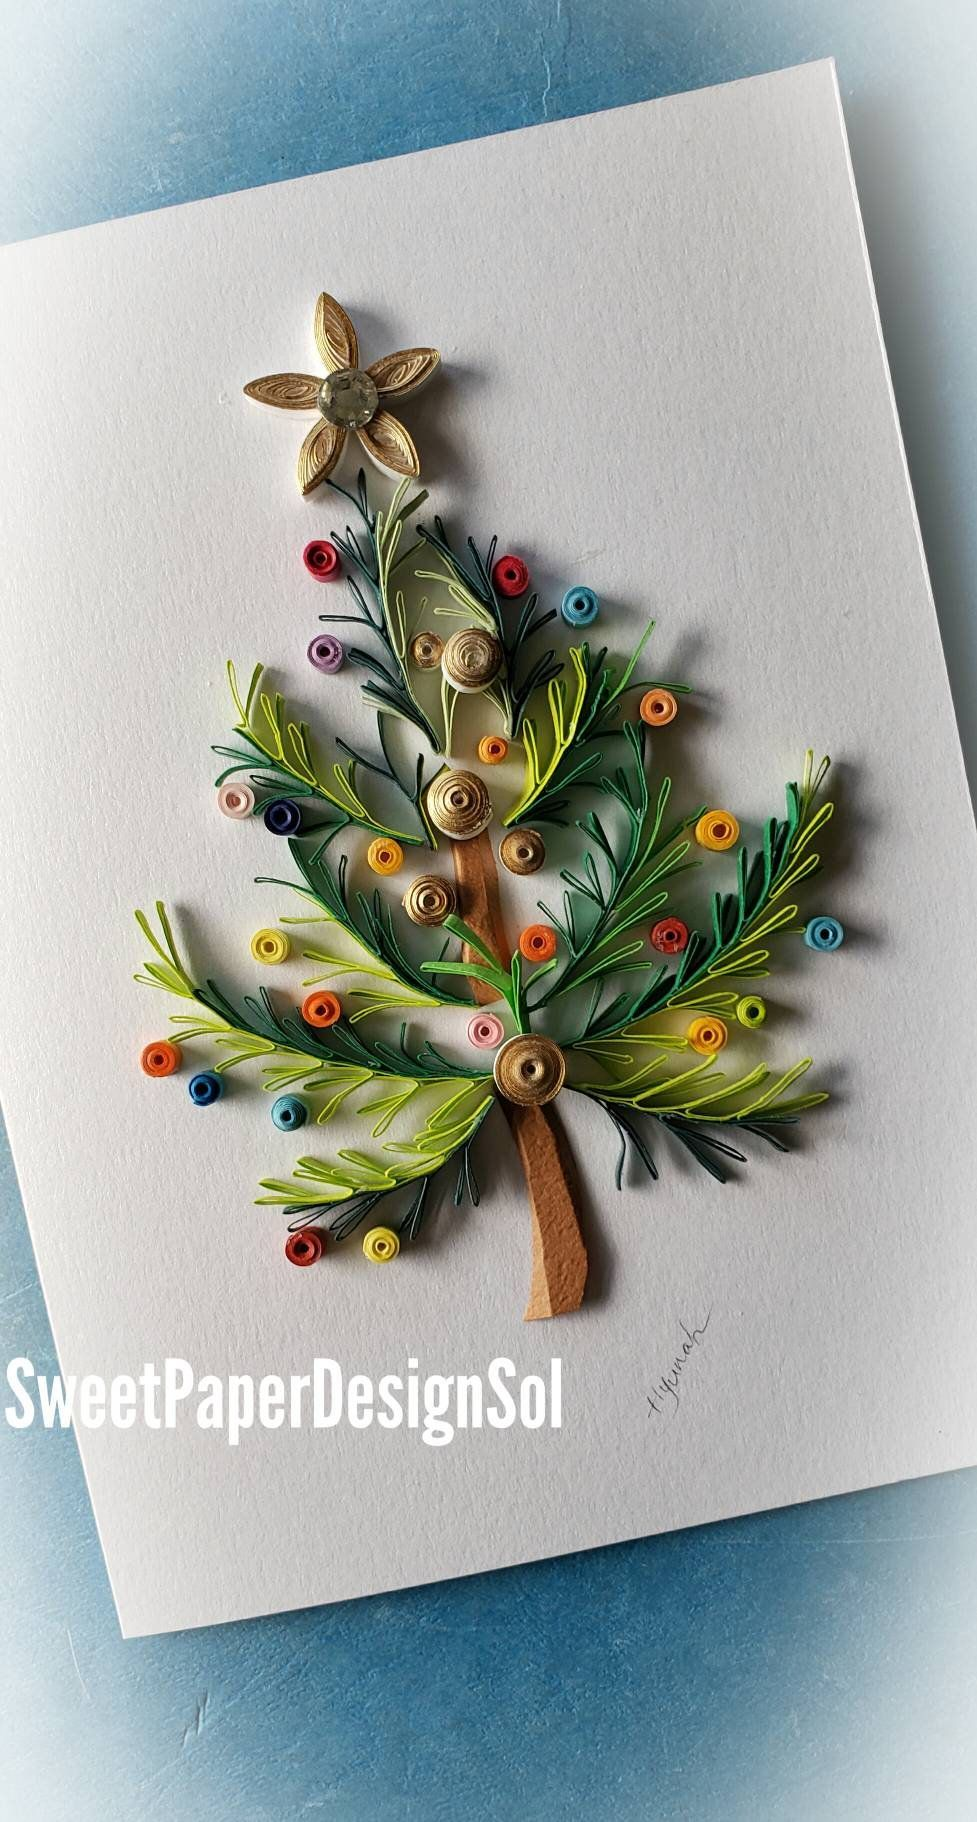 Paper Quilling Art Christmas Gift Christmas Handmade Card Christmas Tree Card Wall Art Home Deco Sunfl Quilling Christmas Paper Quilling Quilling Patterns